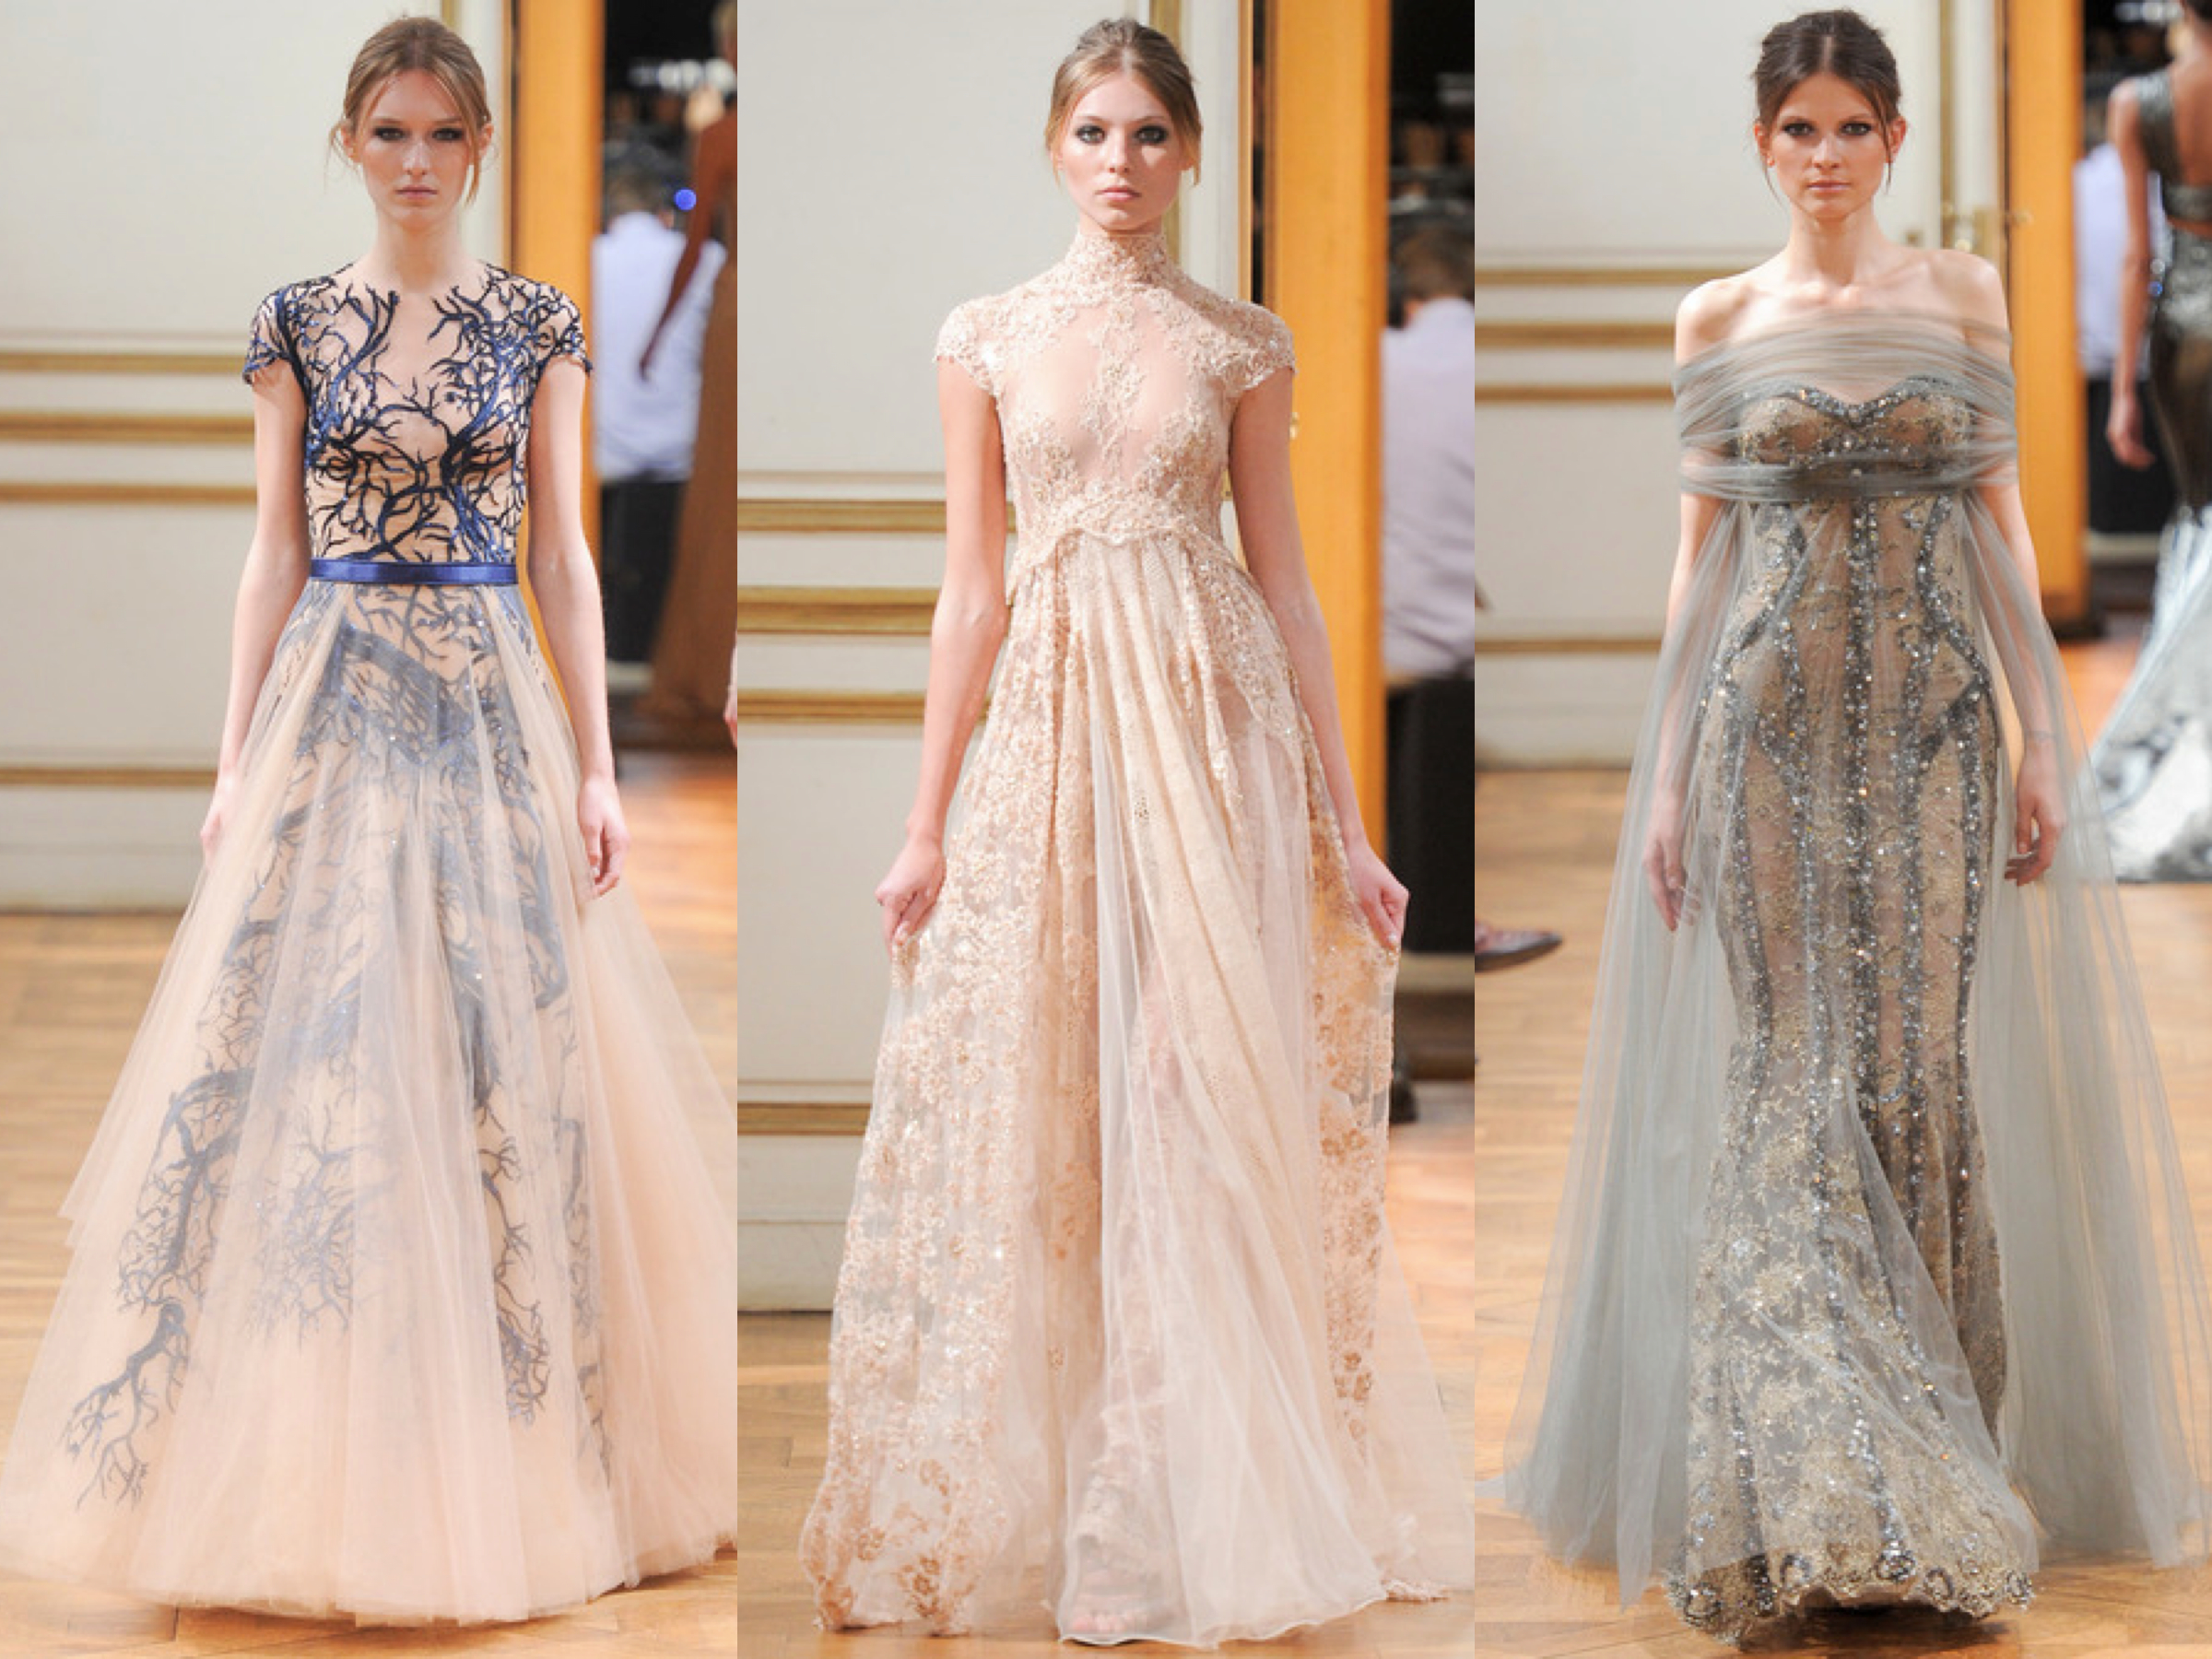 Zuhair Murad Fall Couture 2013 Collage 2